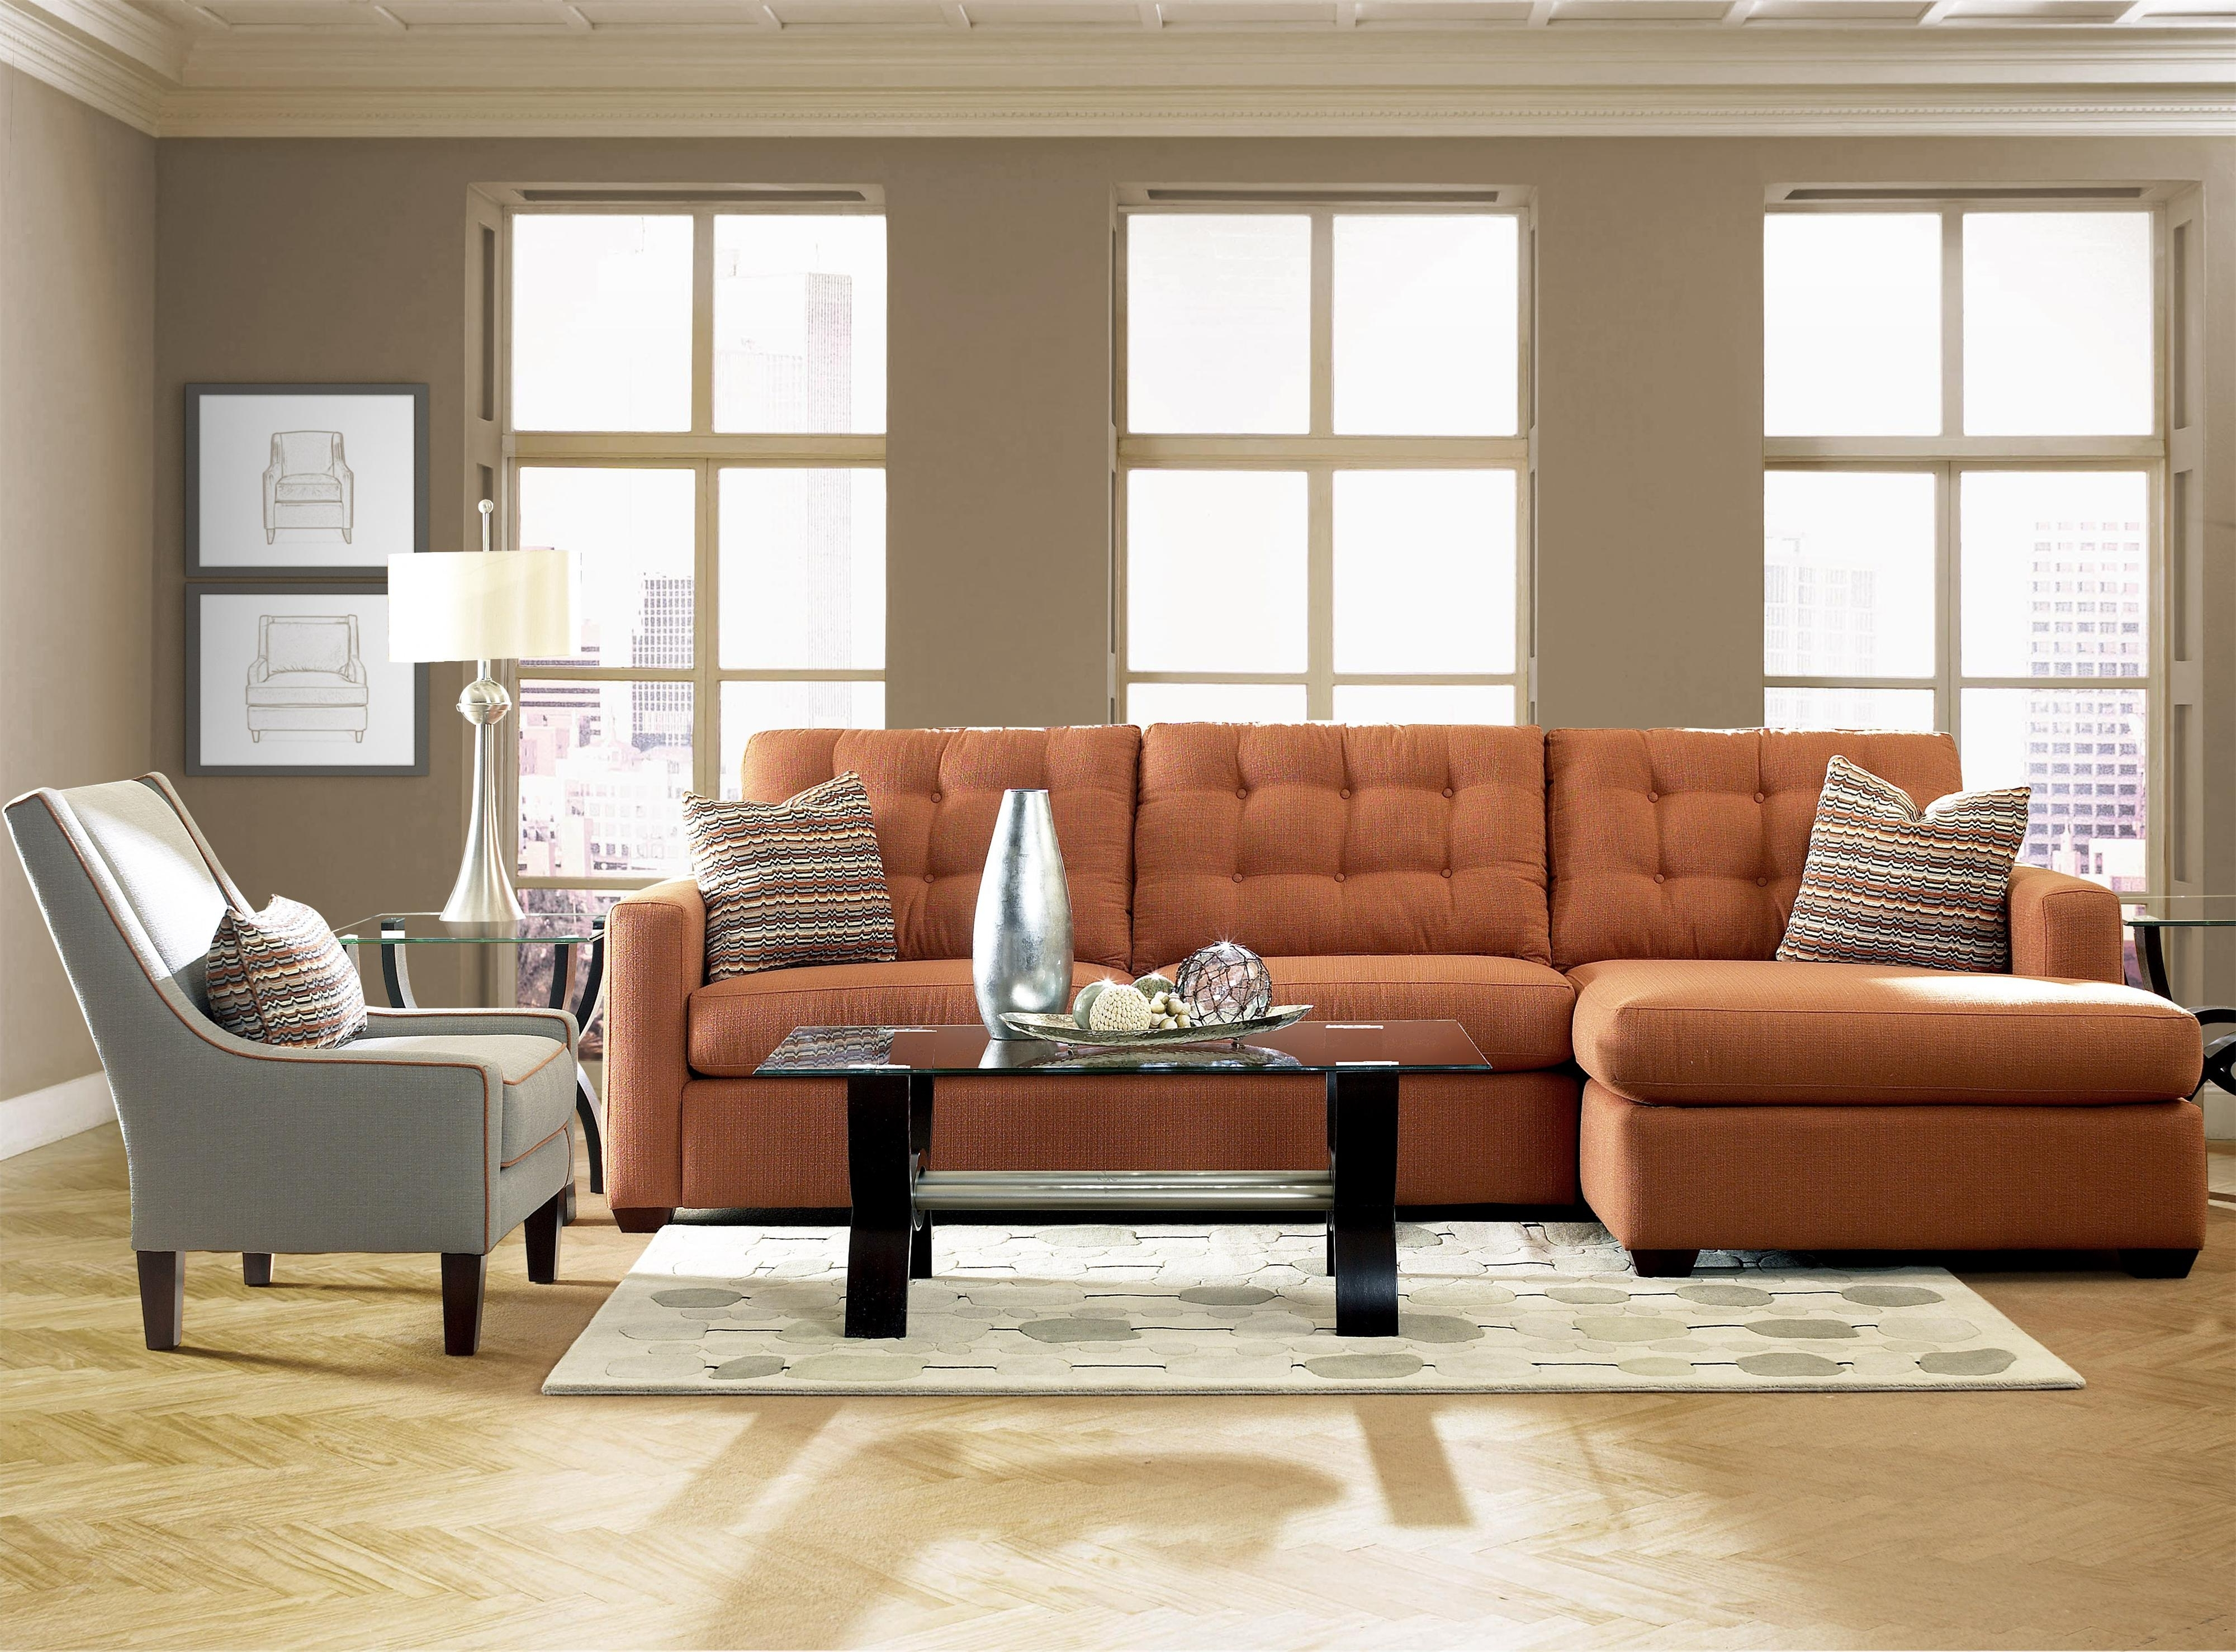 Chaise Lounge Chairs Living Room Furniture • Lounge Chairs Ideas Pertaining To Famous Chaise Chairs For Living Room (View 4 of 15)